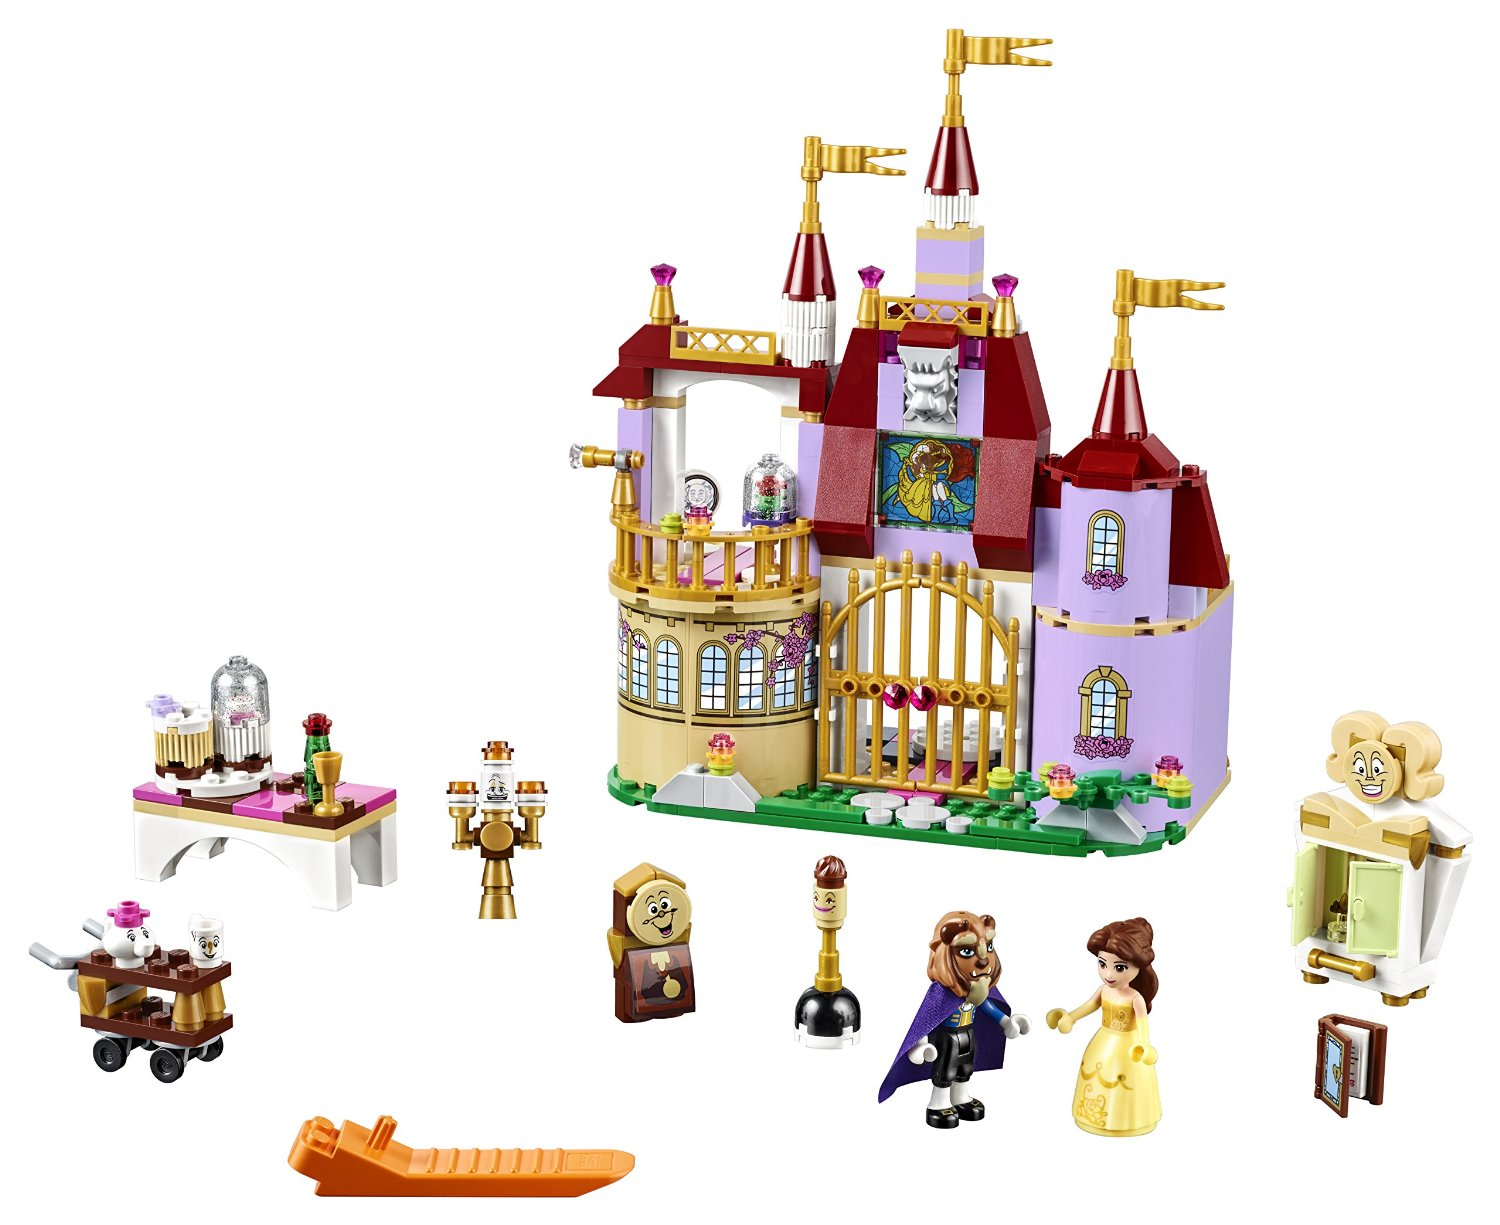 LEGO Disney Beauty /& the Beast Sticker Set 41067 Sticker Sheet Only! READ!